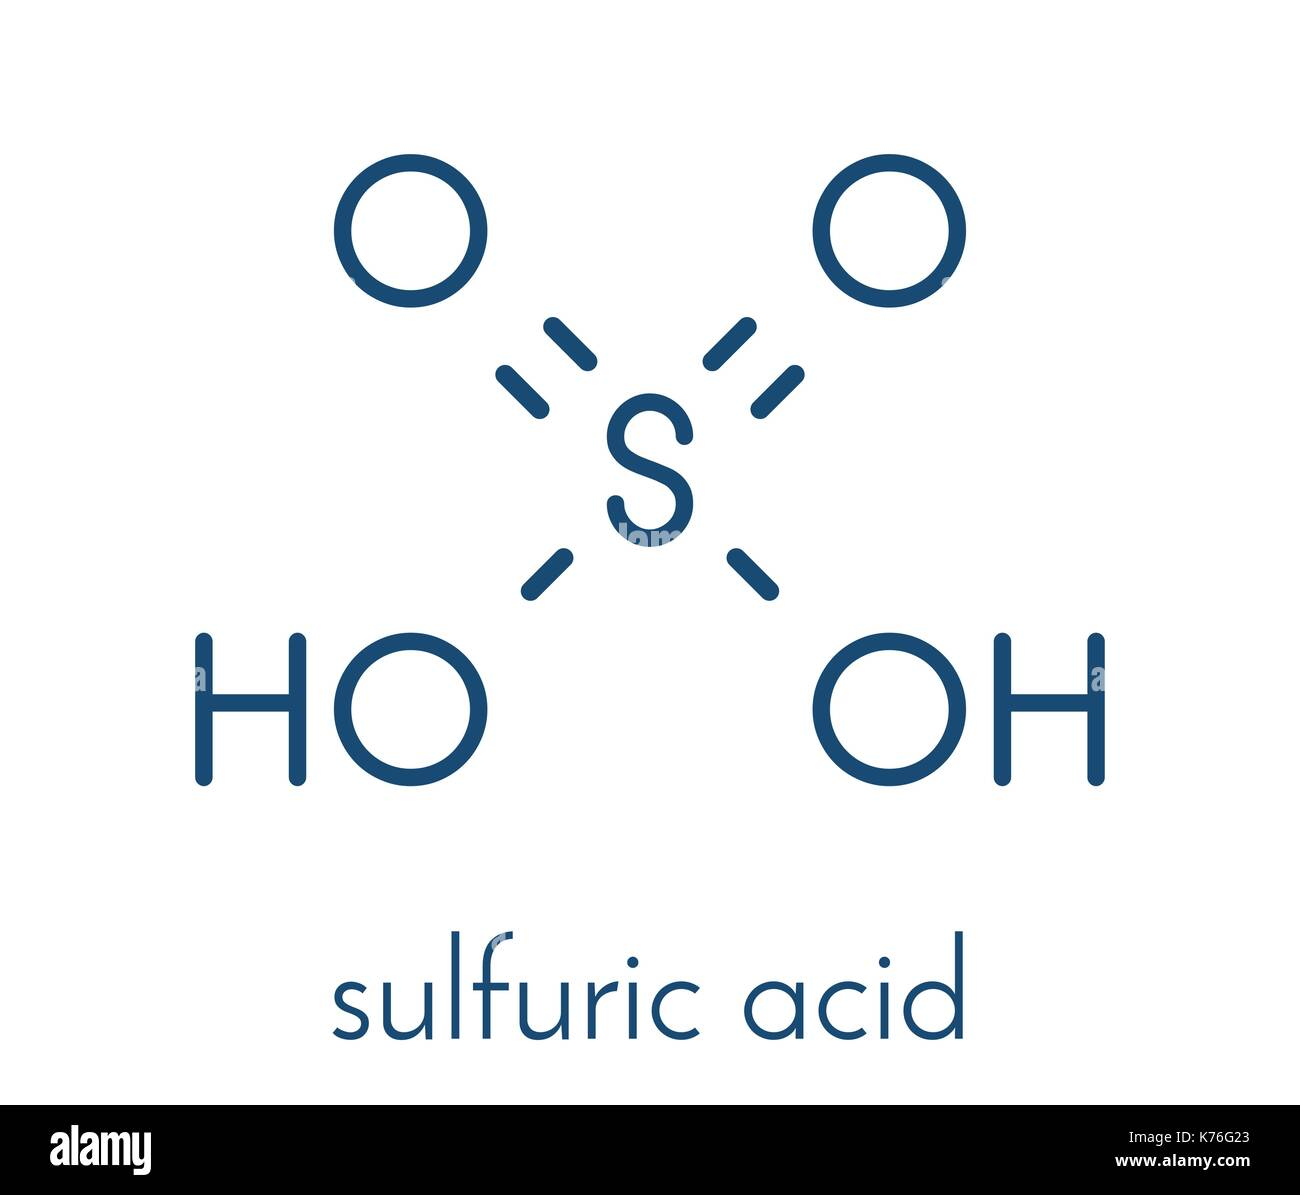 Sulfuric Acid Molecule Stock Photos Sulfuric Acid Molecule Stock